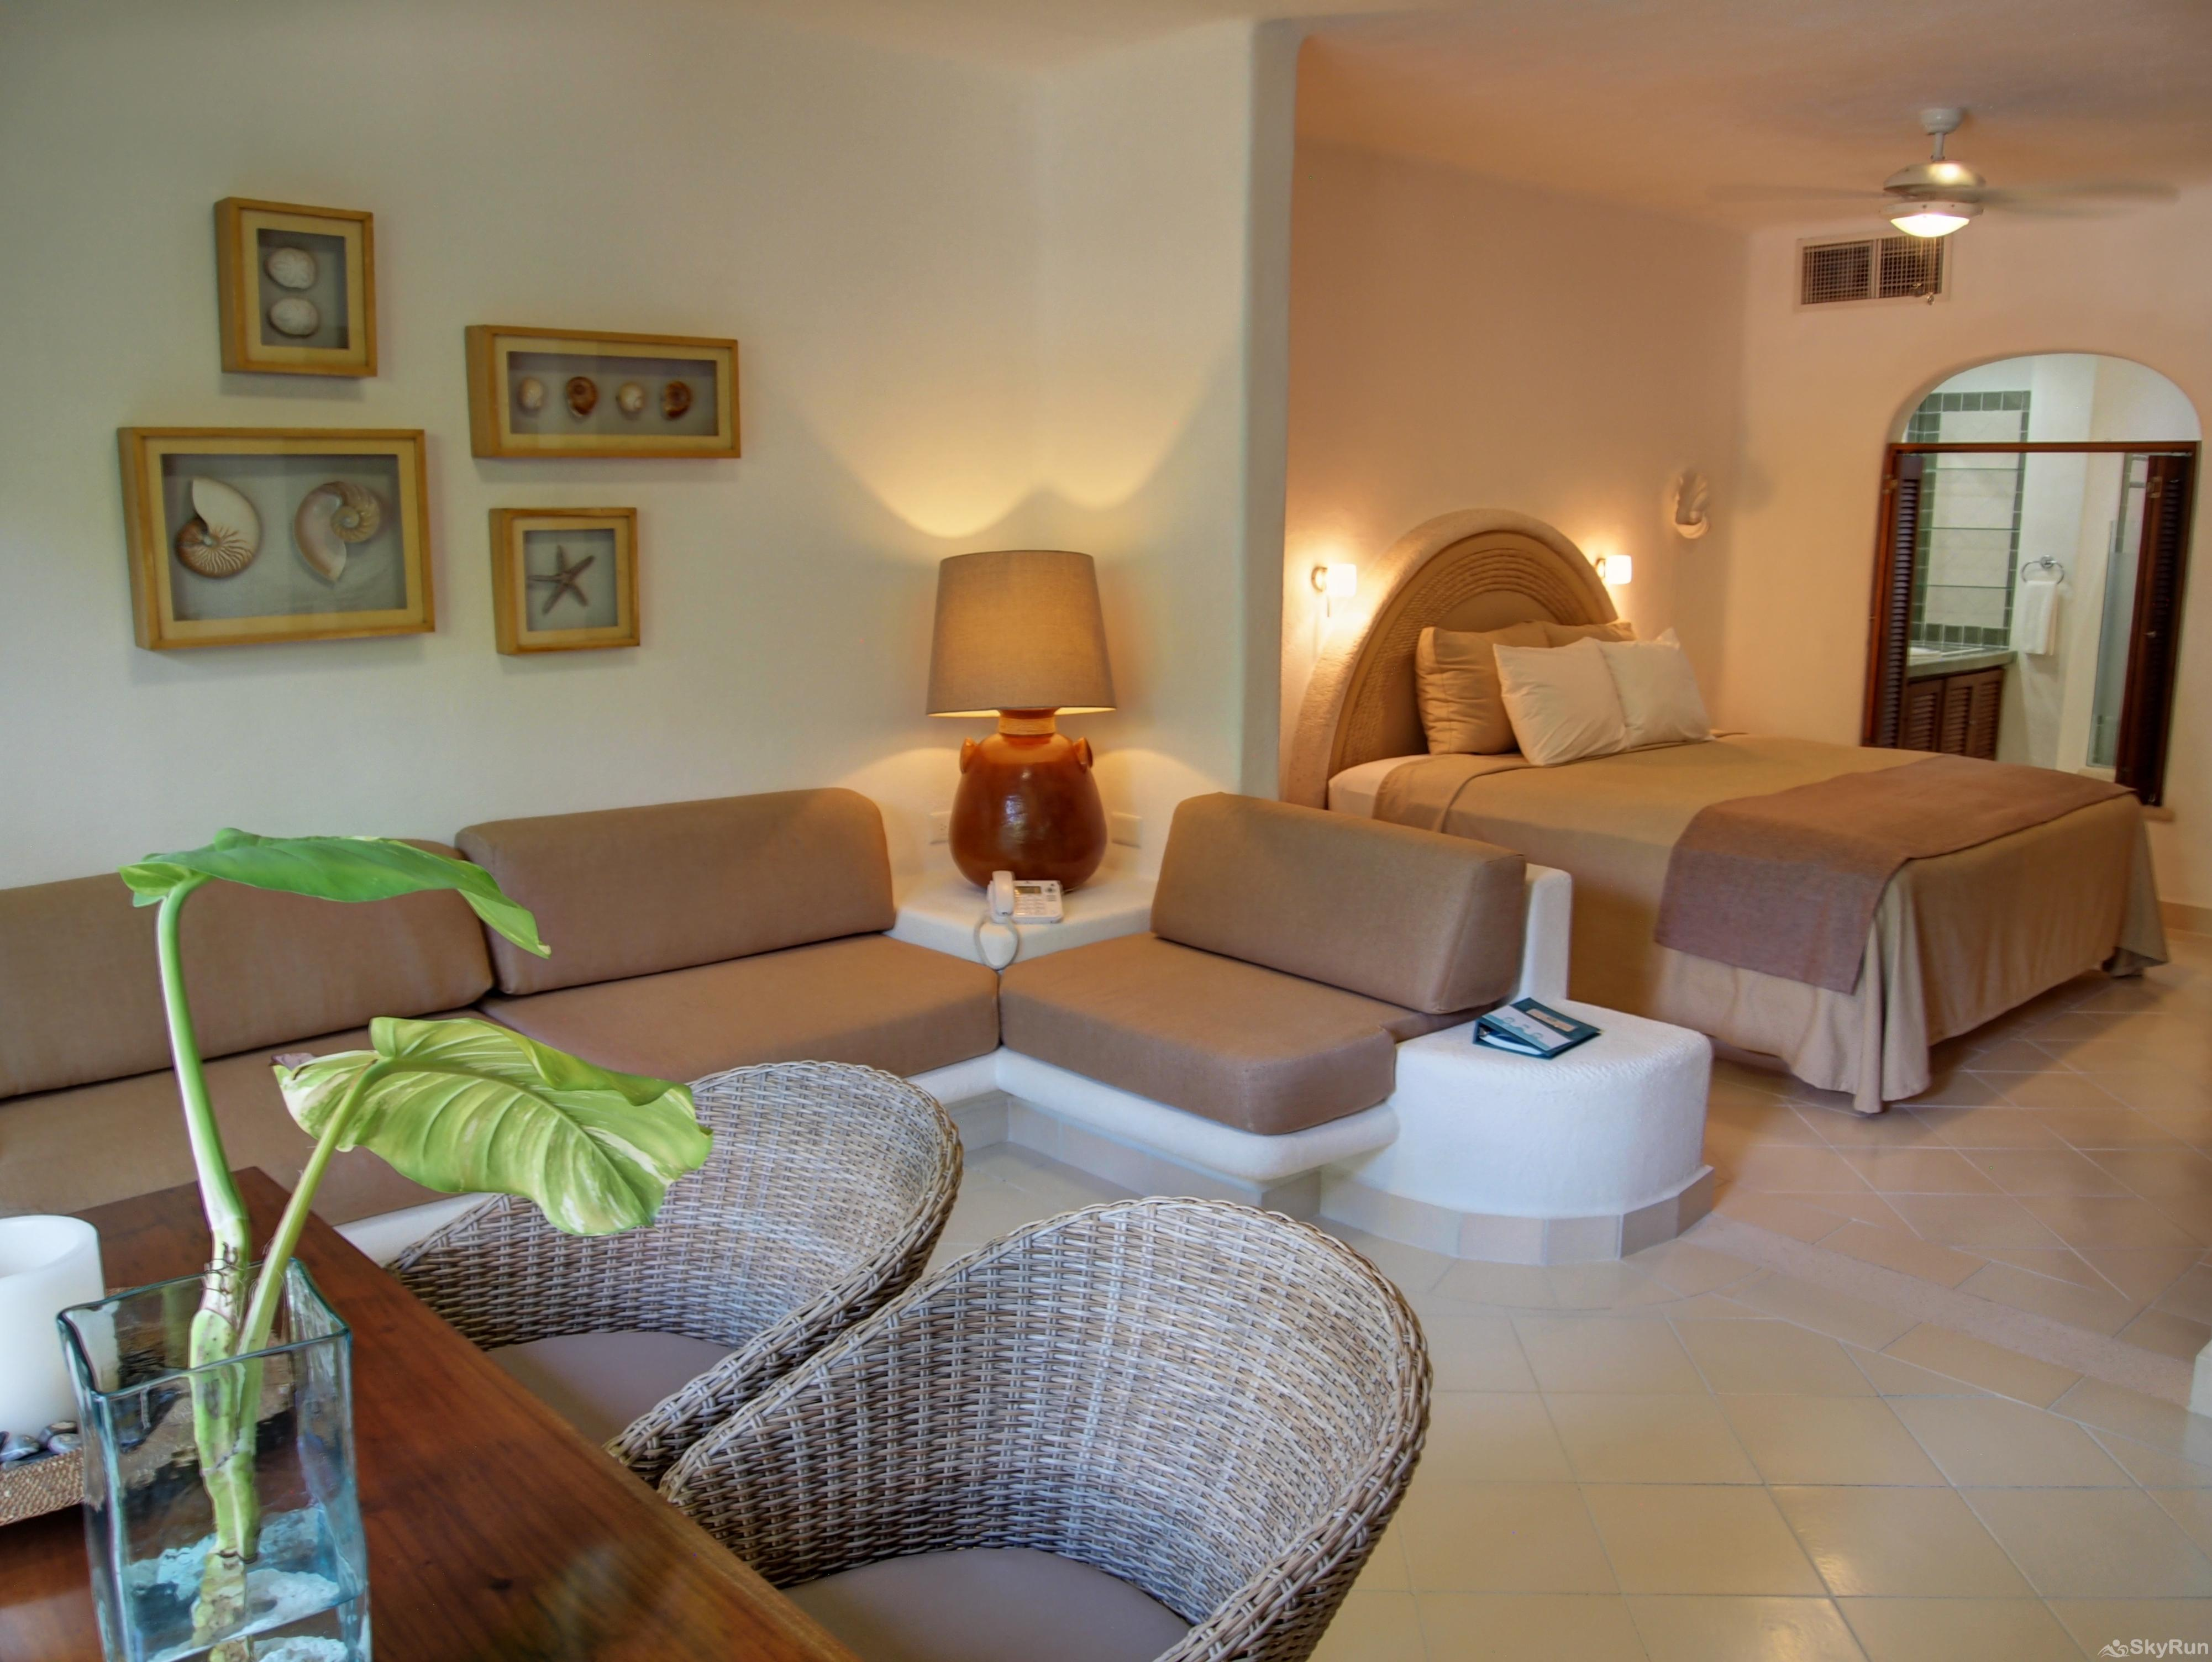 Bliss Akumal Condo Villa 1 Bedroom Garden View 109A Like Home only better